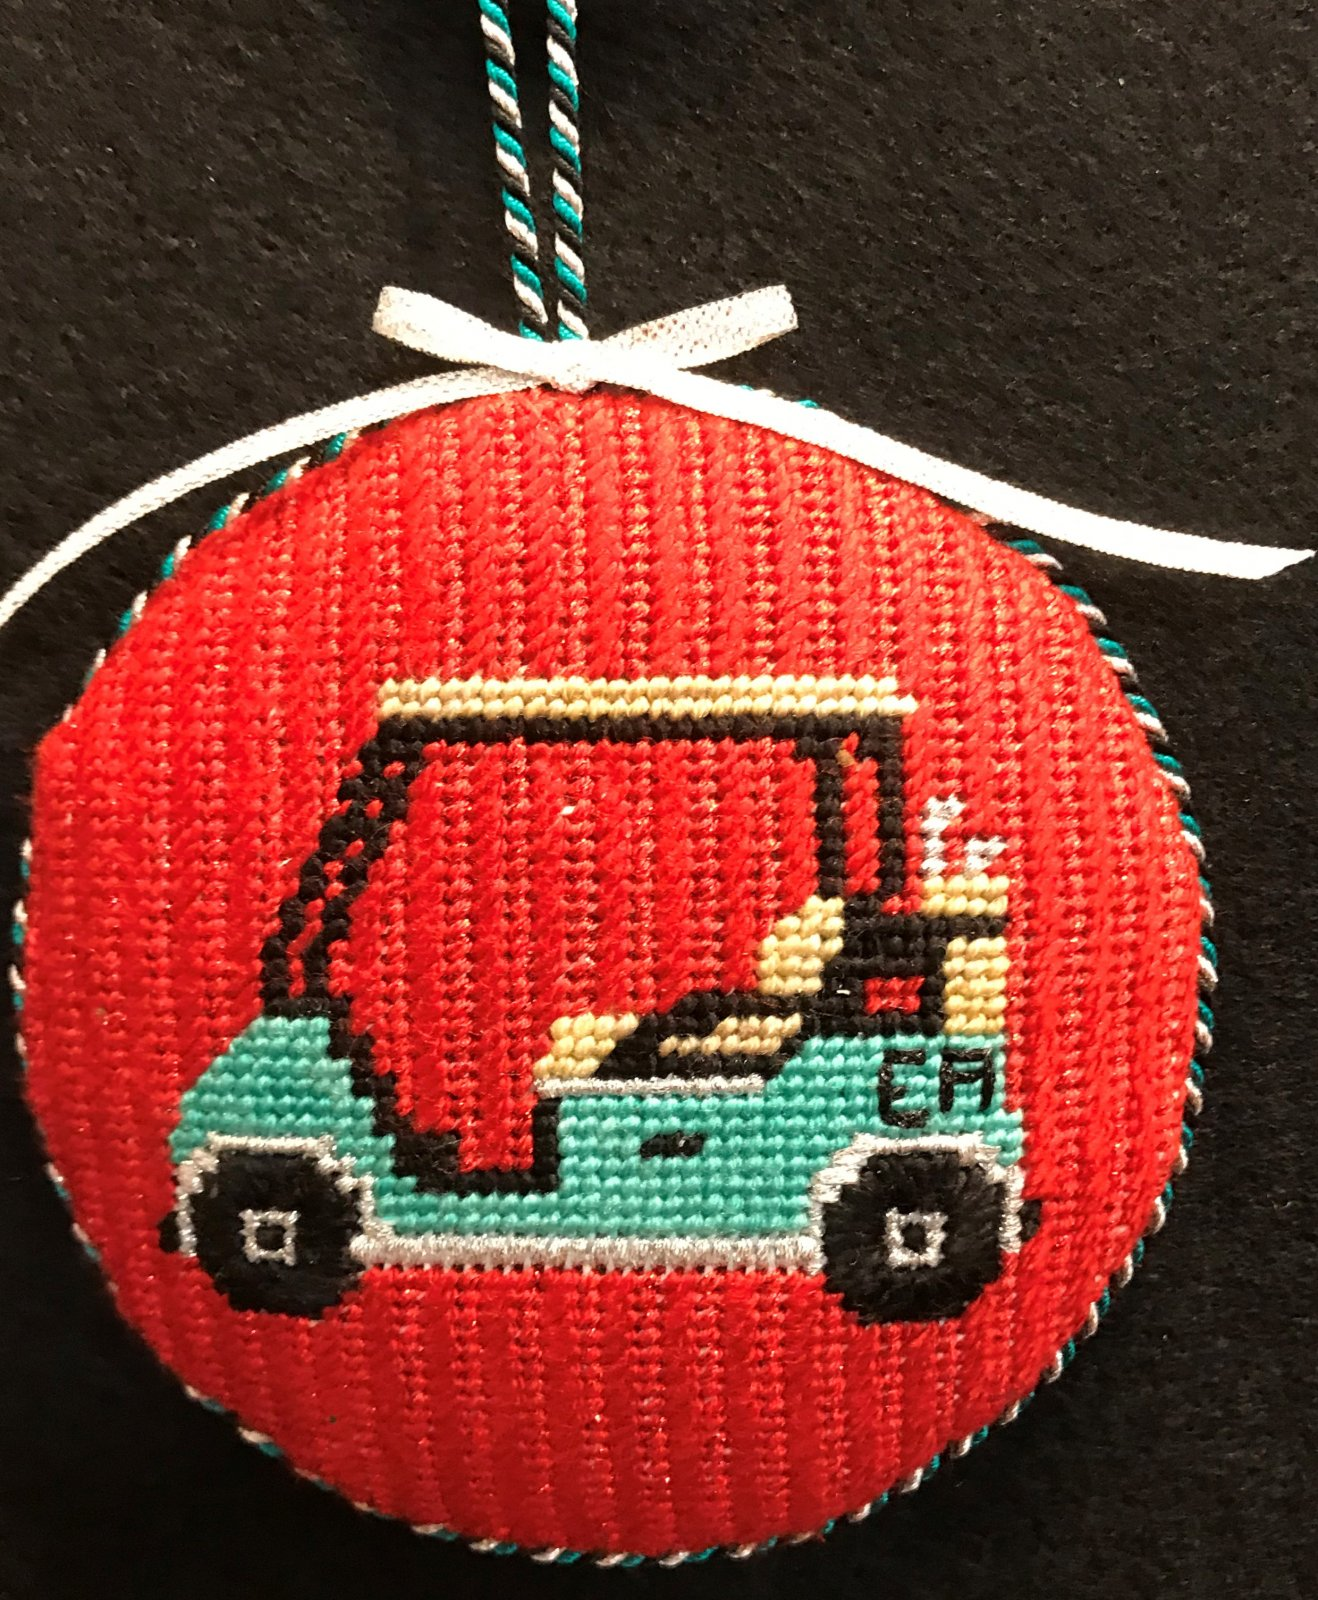 Golf Cart Ornament - stitched by E. Allen